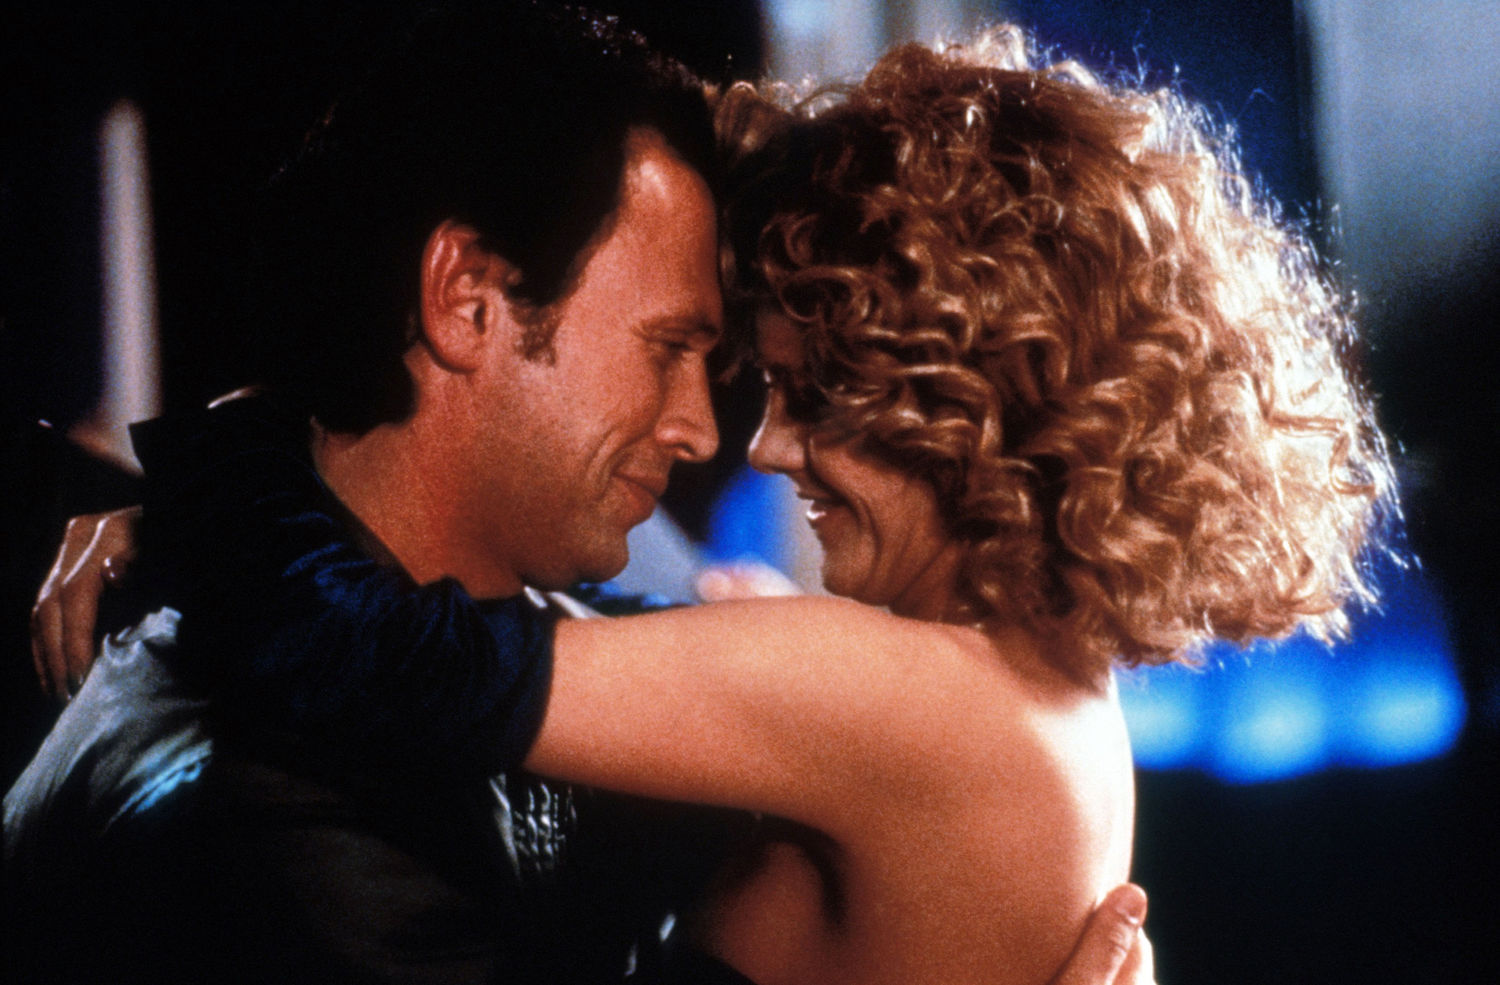 When Harry Met Sally, Released 1989, by Castle Rock Entertainment, Distributed by Columbia Pictures